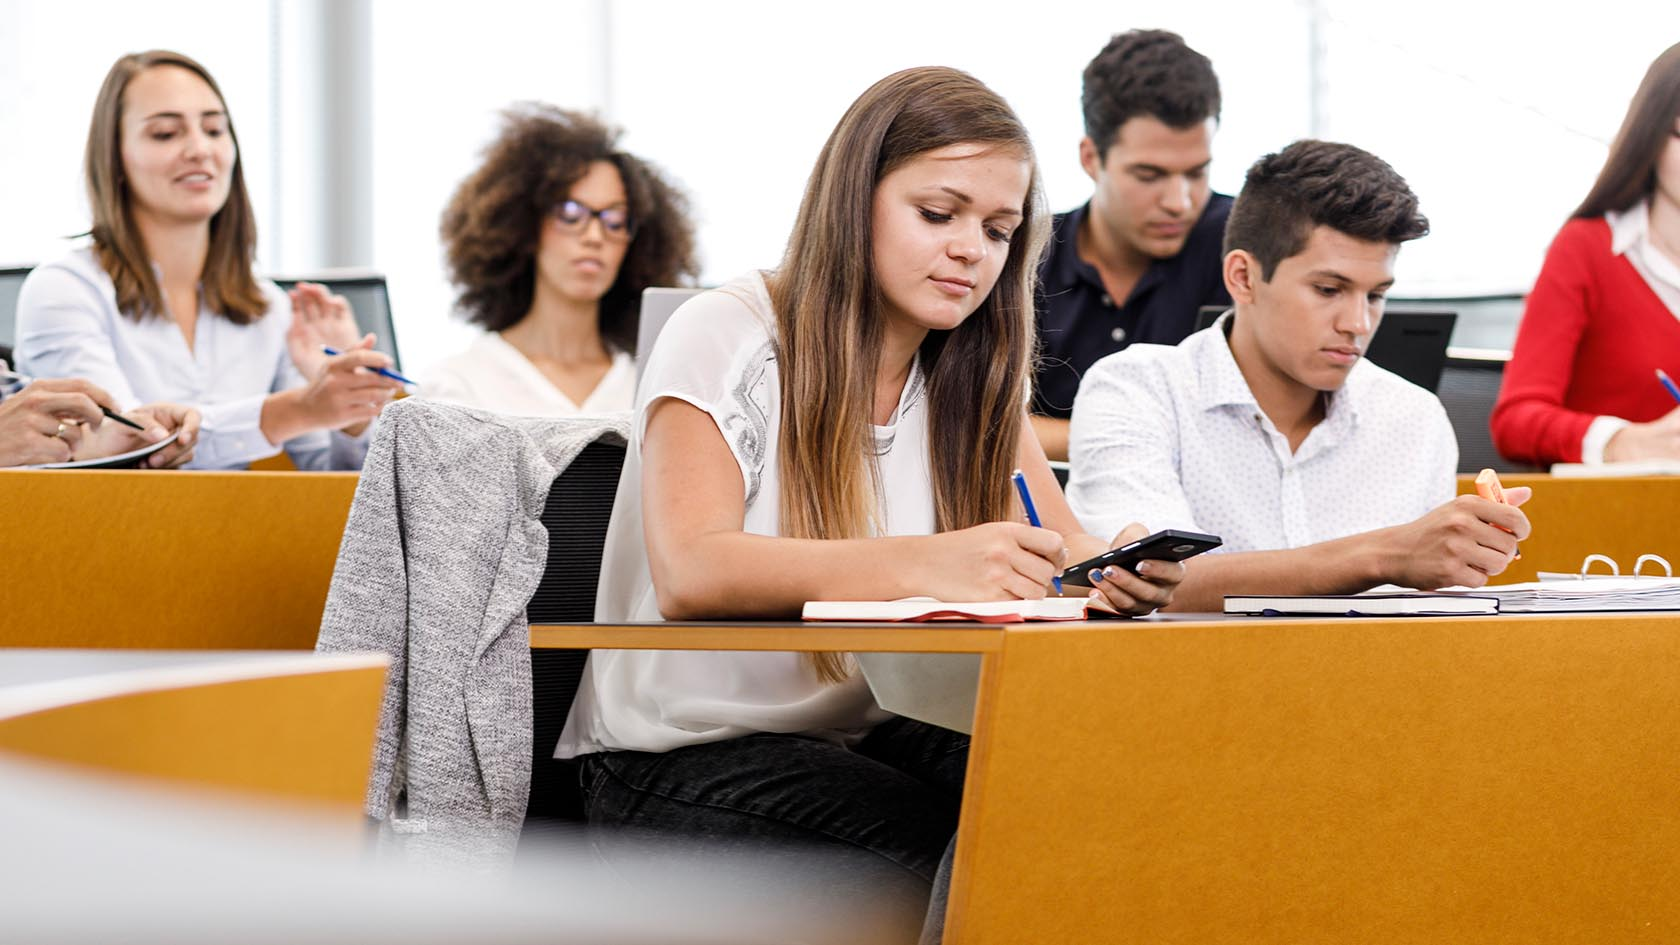 Students in a bright seminar room working concentrated